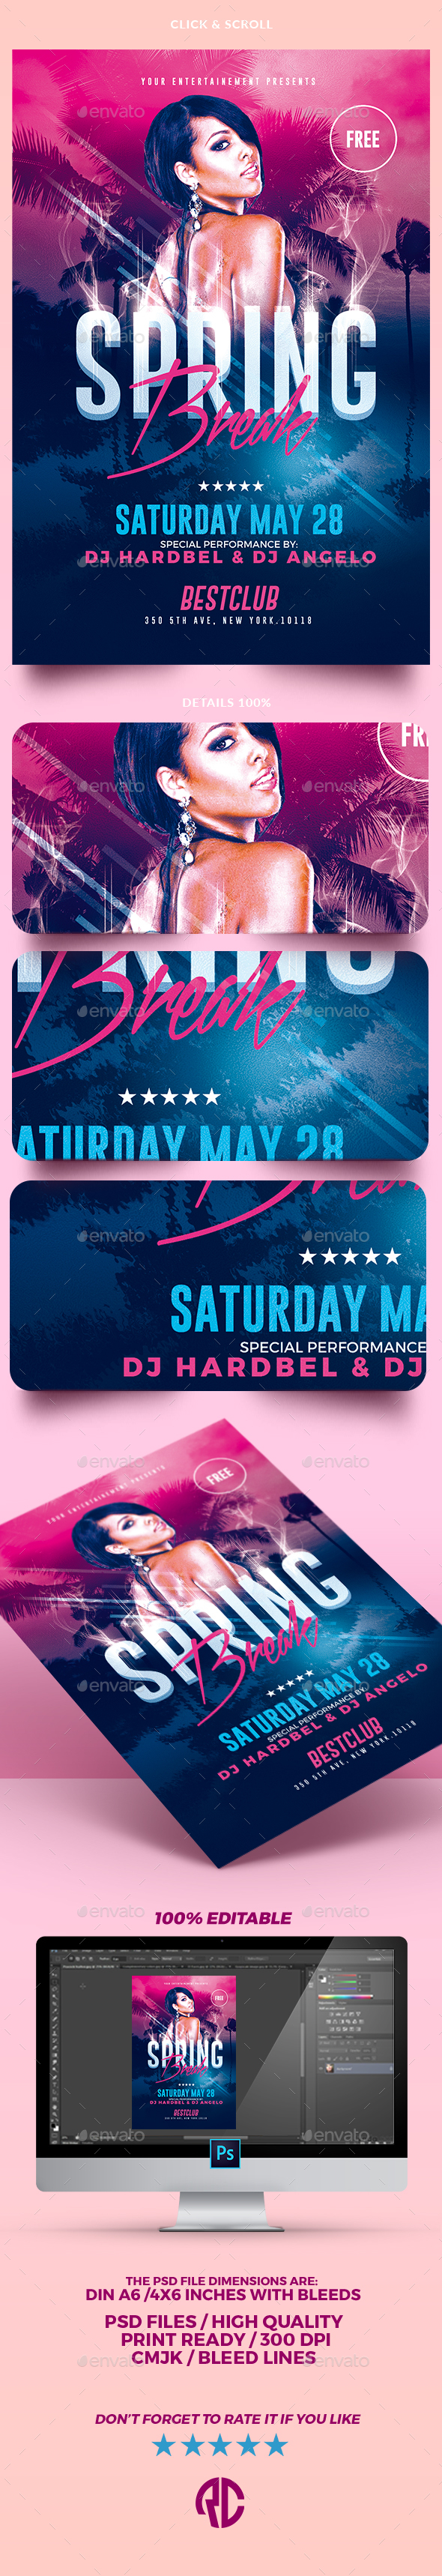 Spring Break Party | Psd Template - Events Flyers